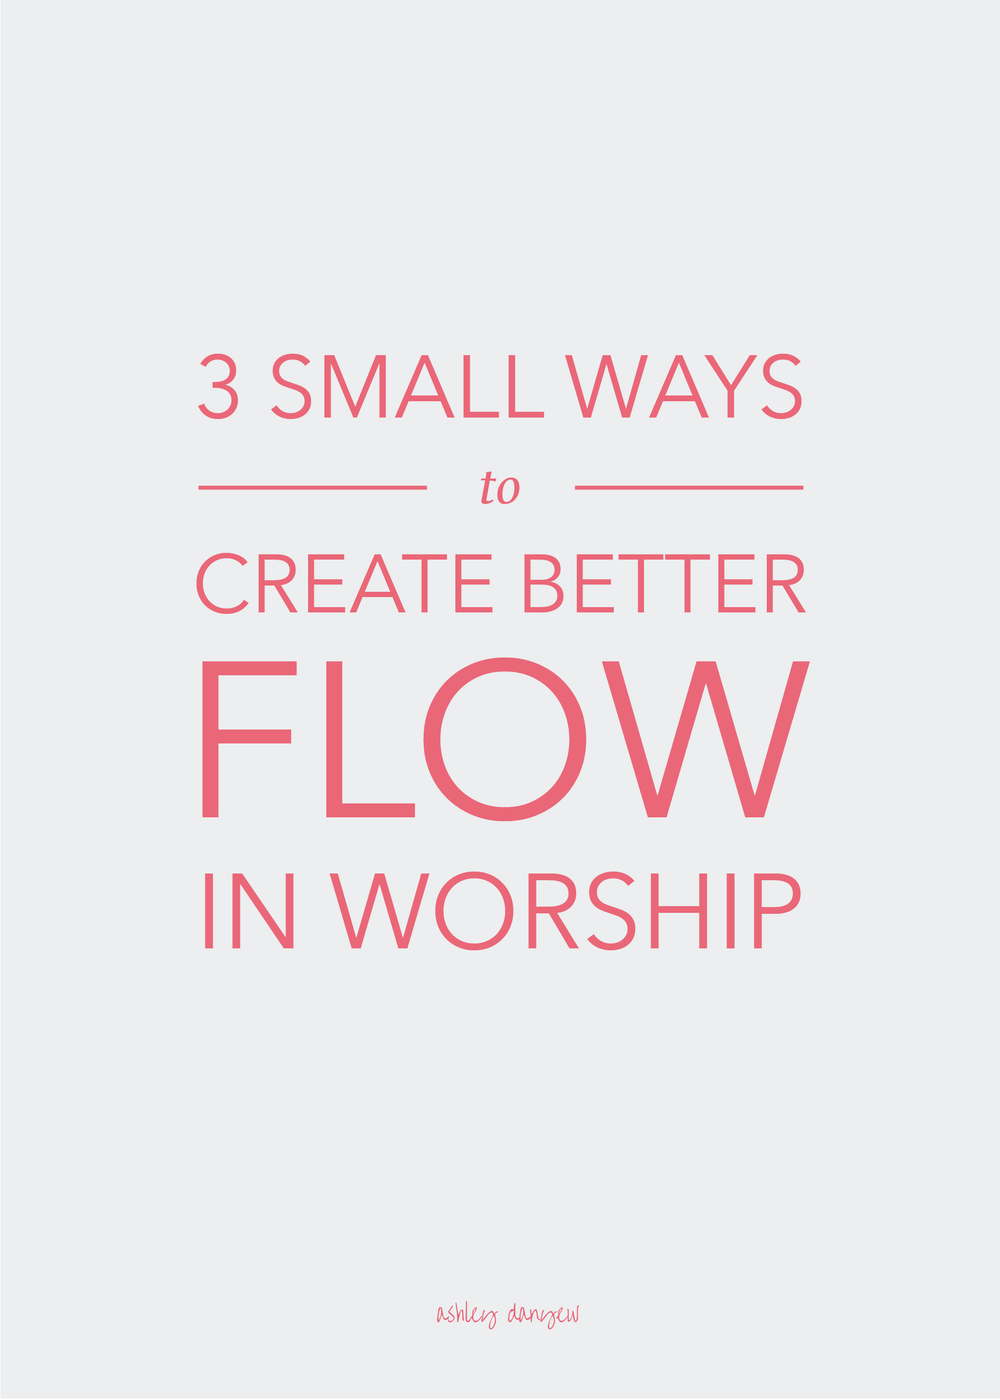 3 Small Ways to Create Better Flow in Worship-72.png